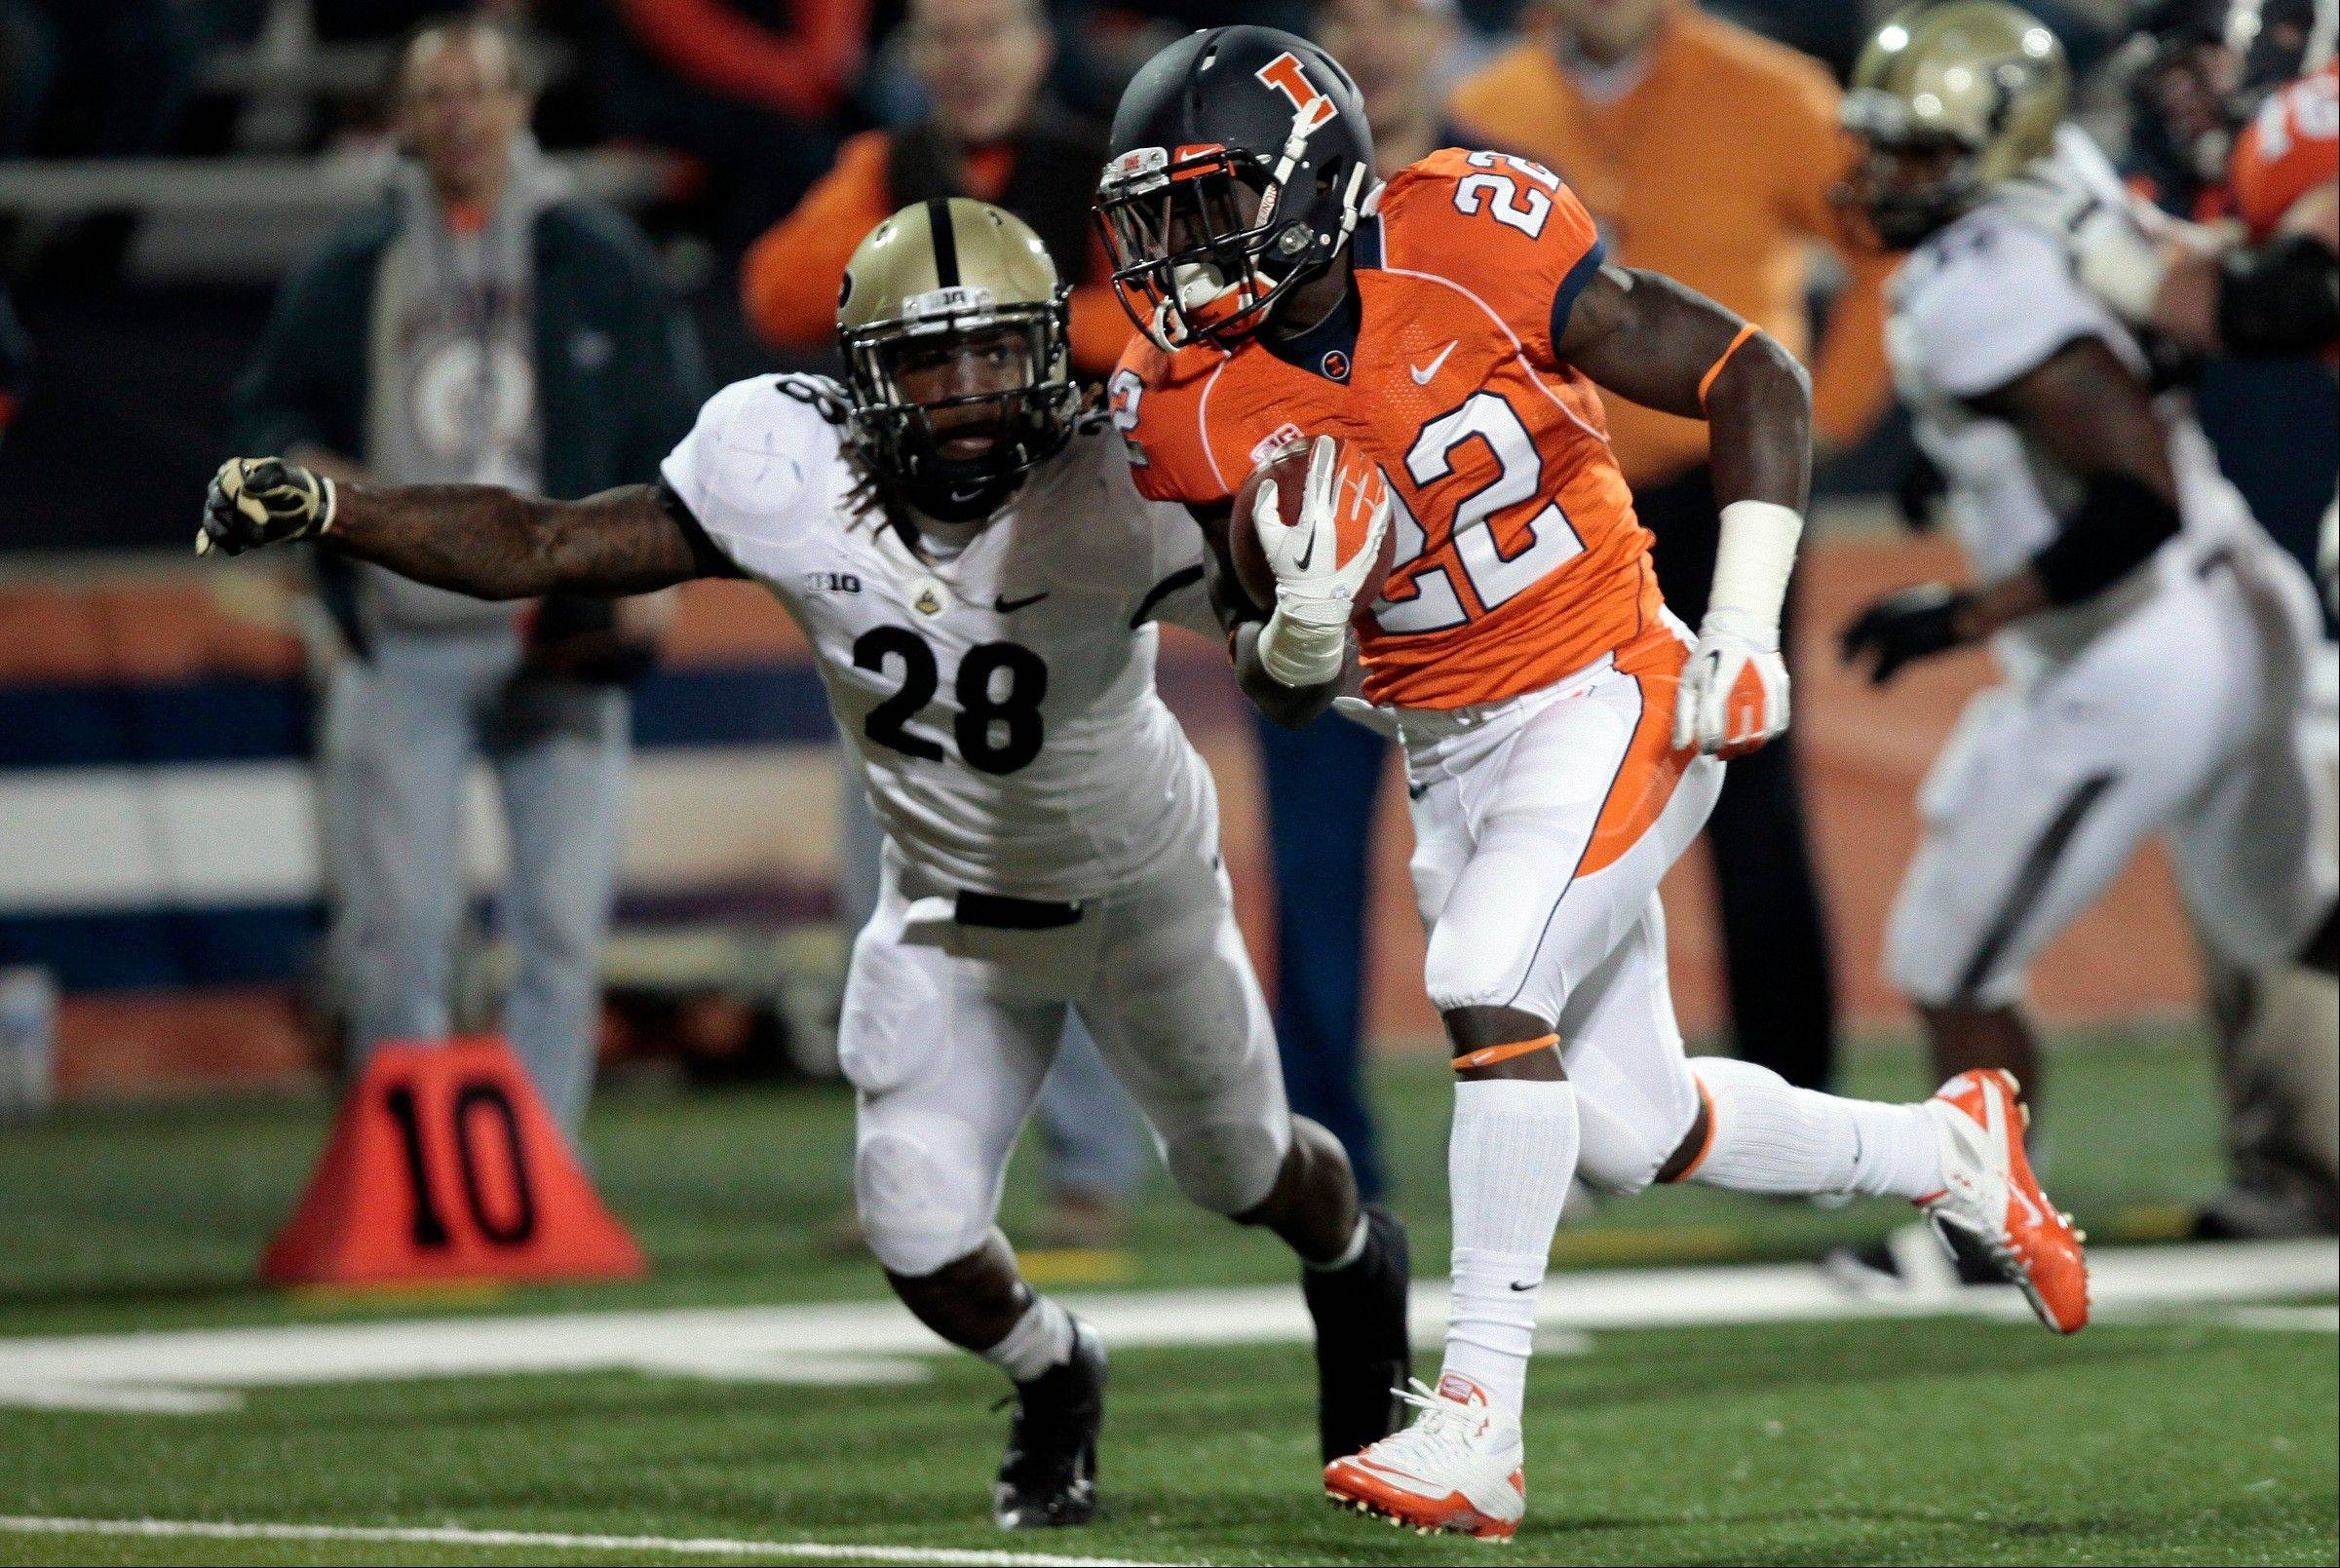 Illinois' Dami Ayoola runs the ball into the end zone past Purdue's Josh Johnson during the second half in Champaign.